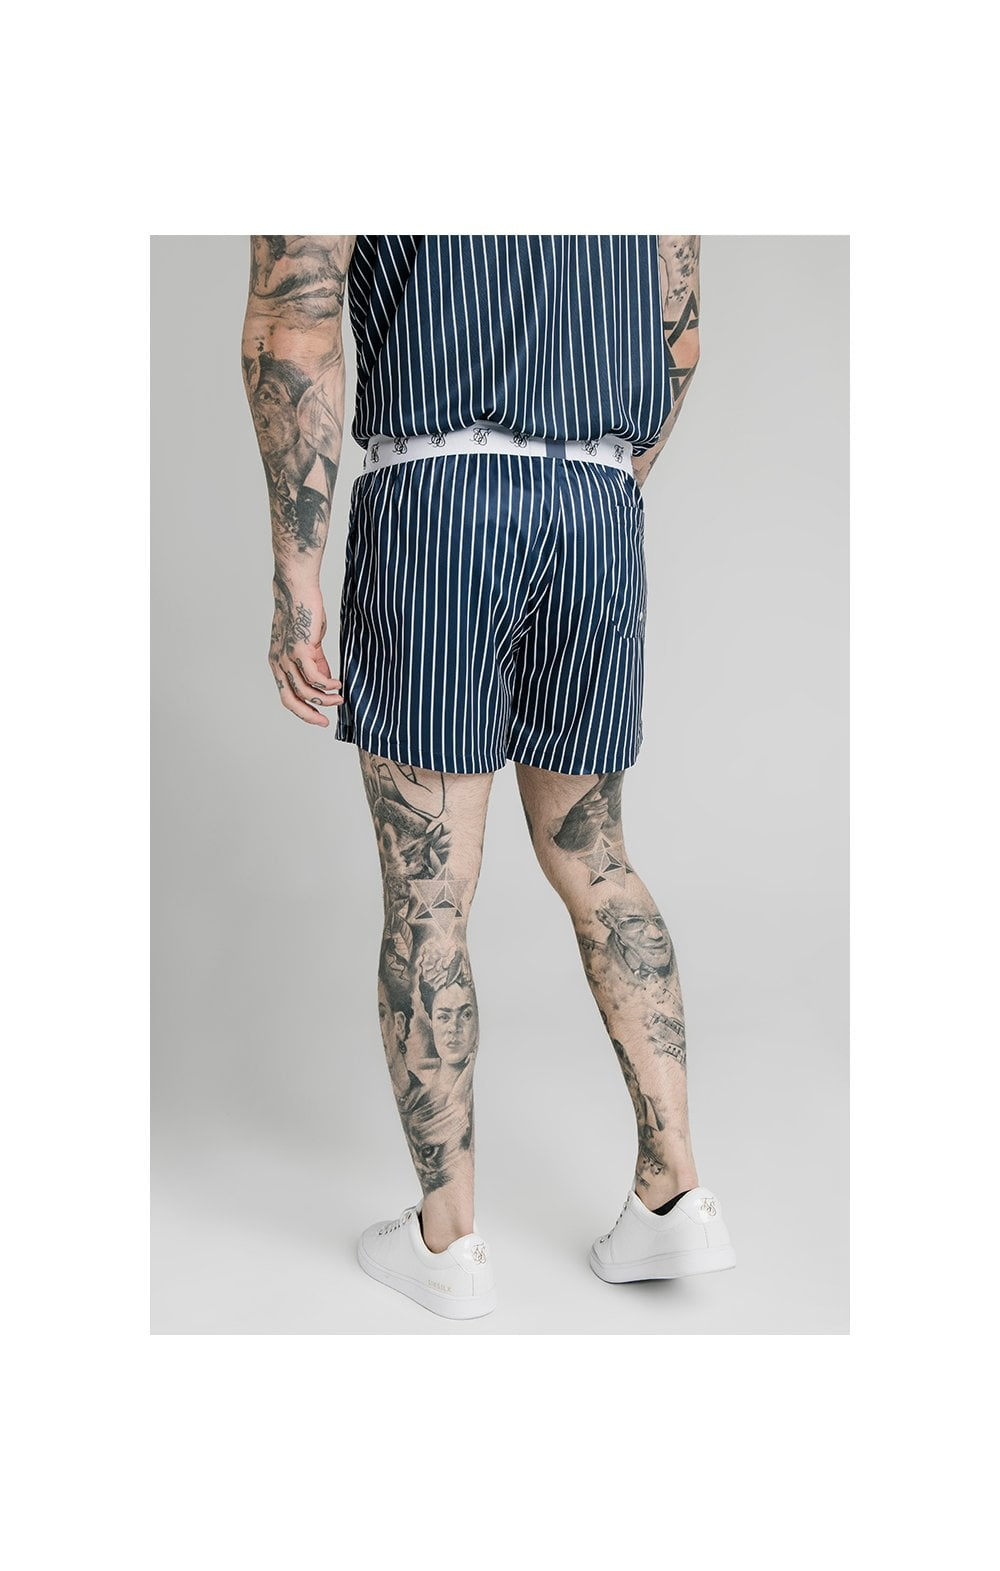 SikSilk Eyelet Elasticated Swim Shorts - Navy & White (7)